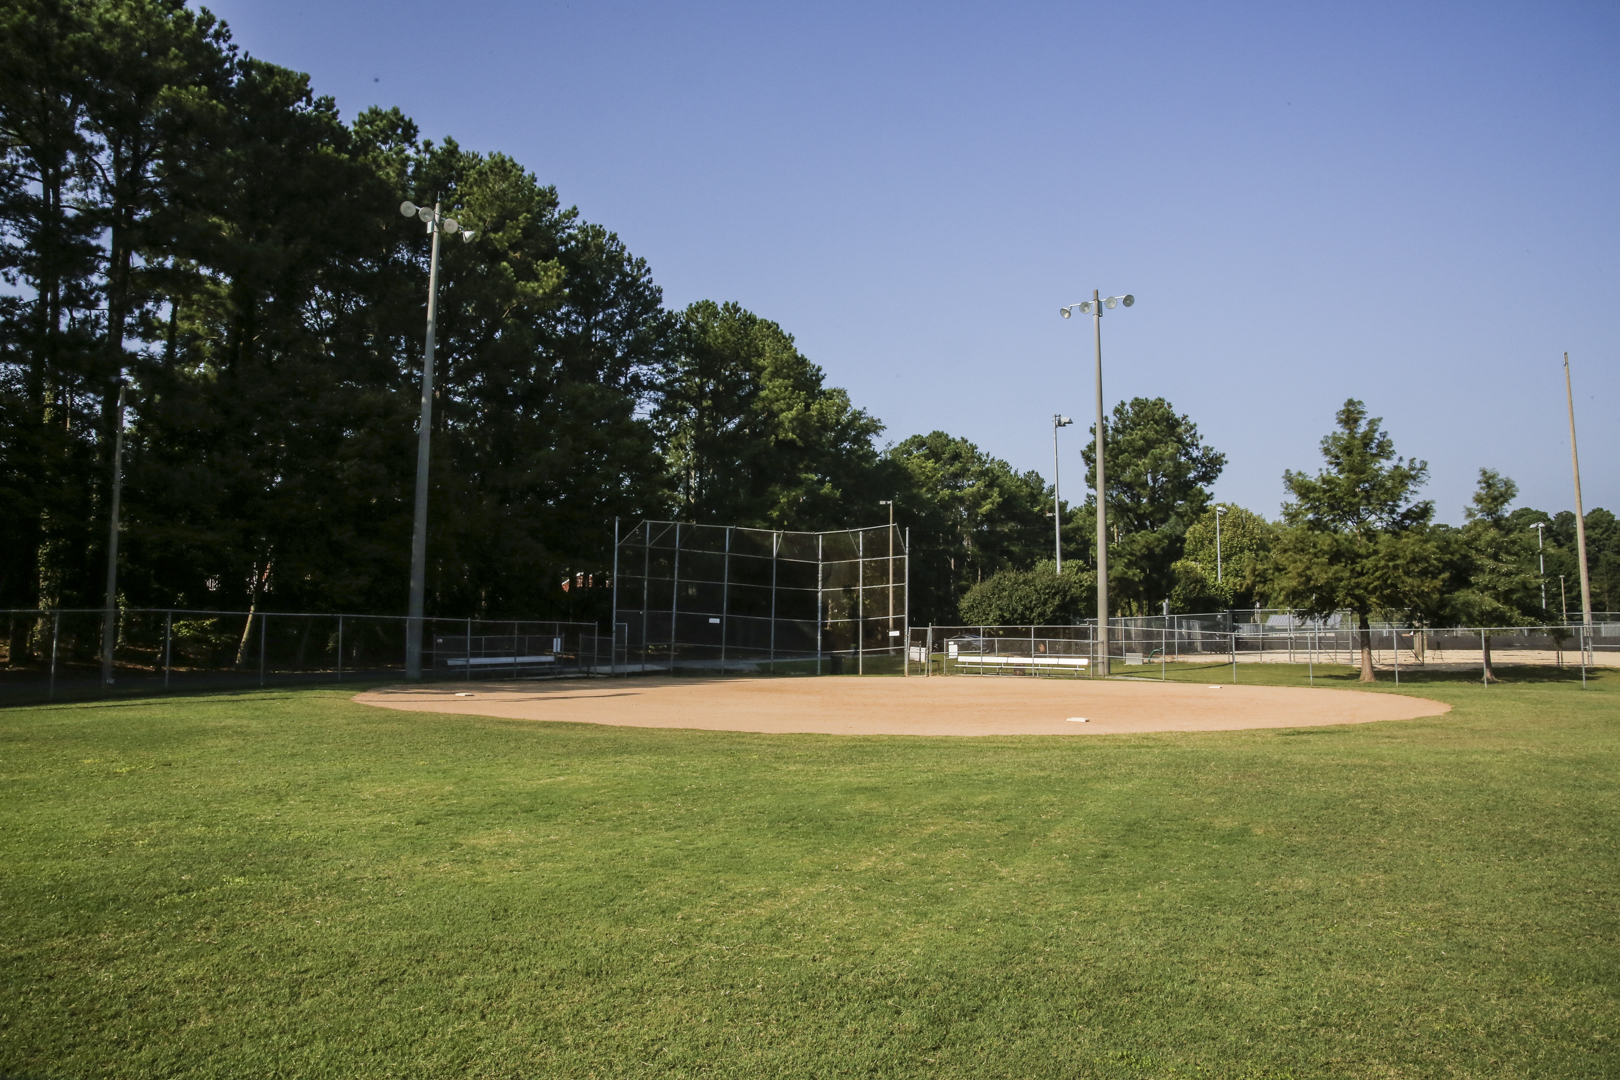 A large open field used for youth softball